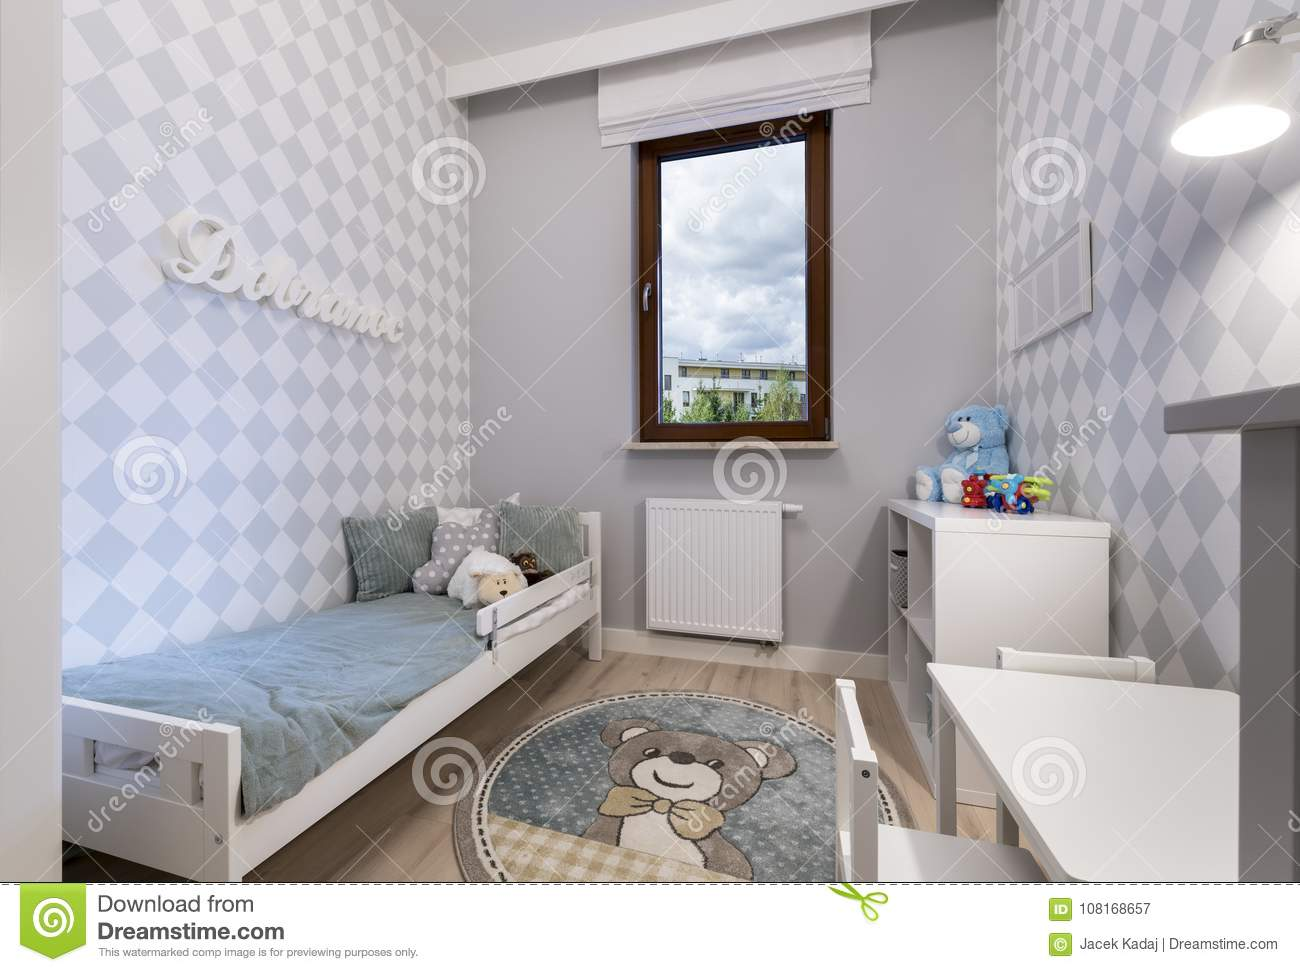 Small Child Room In Modern Apartment Stock Image - Image of ...